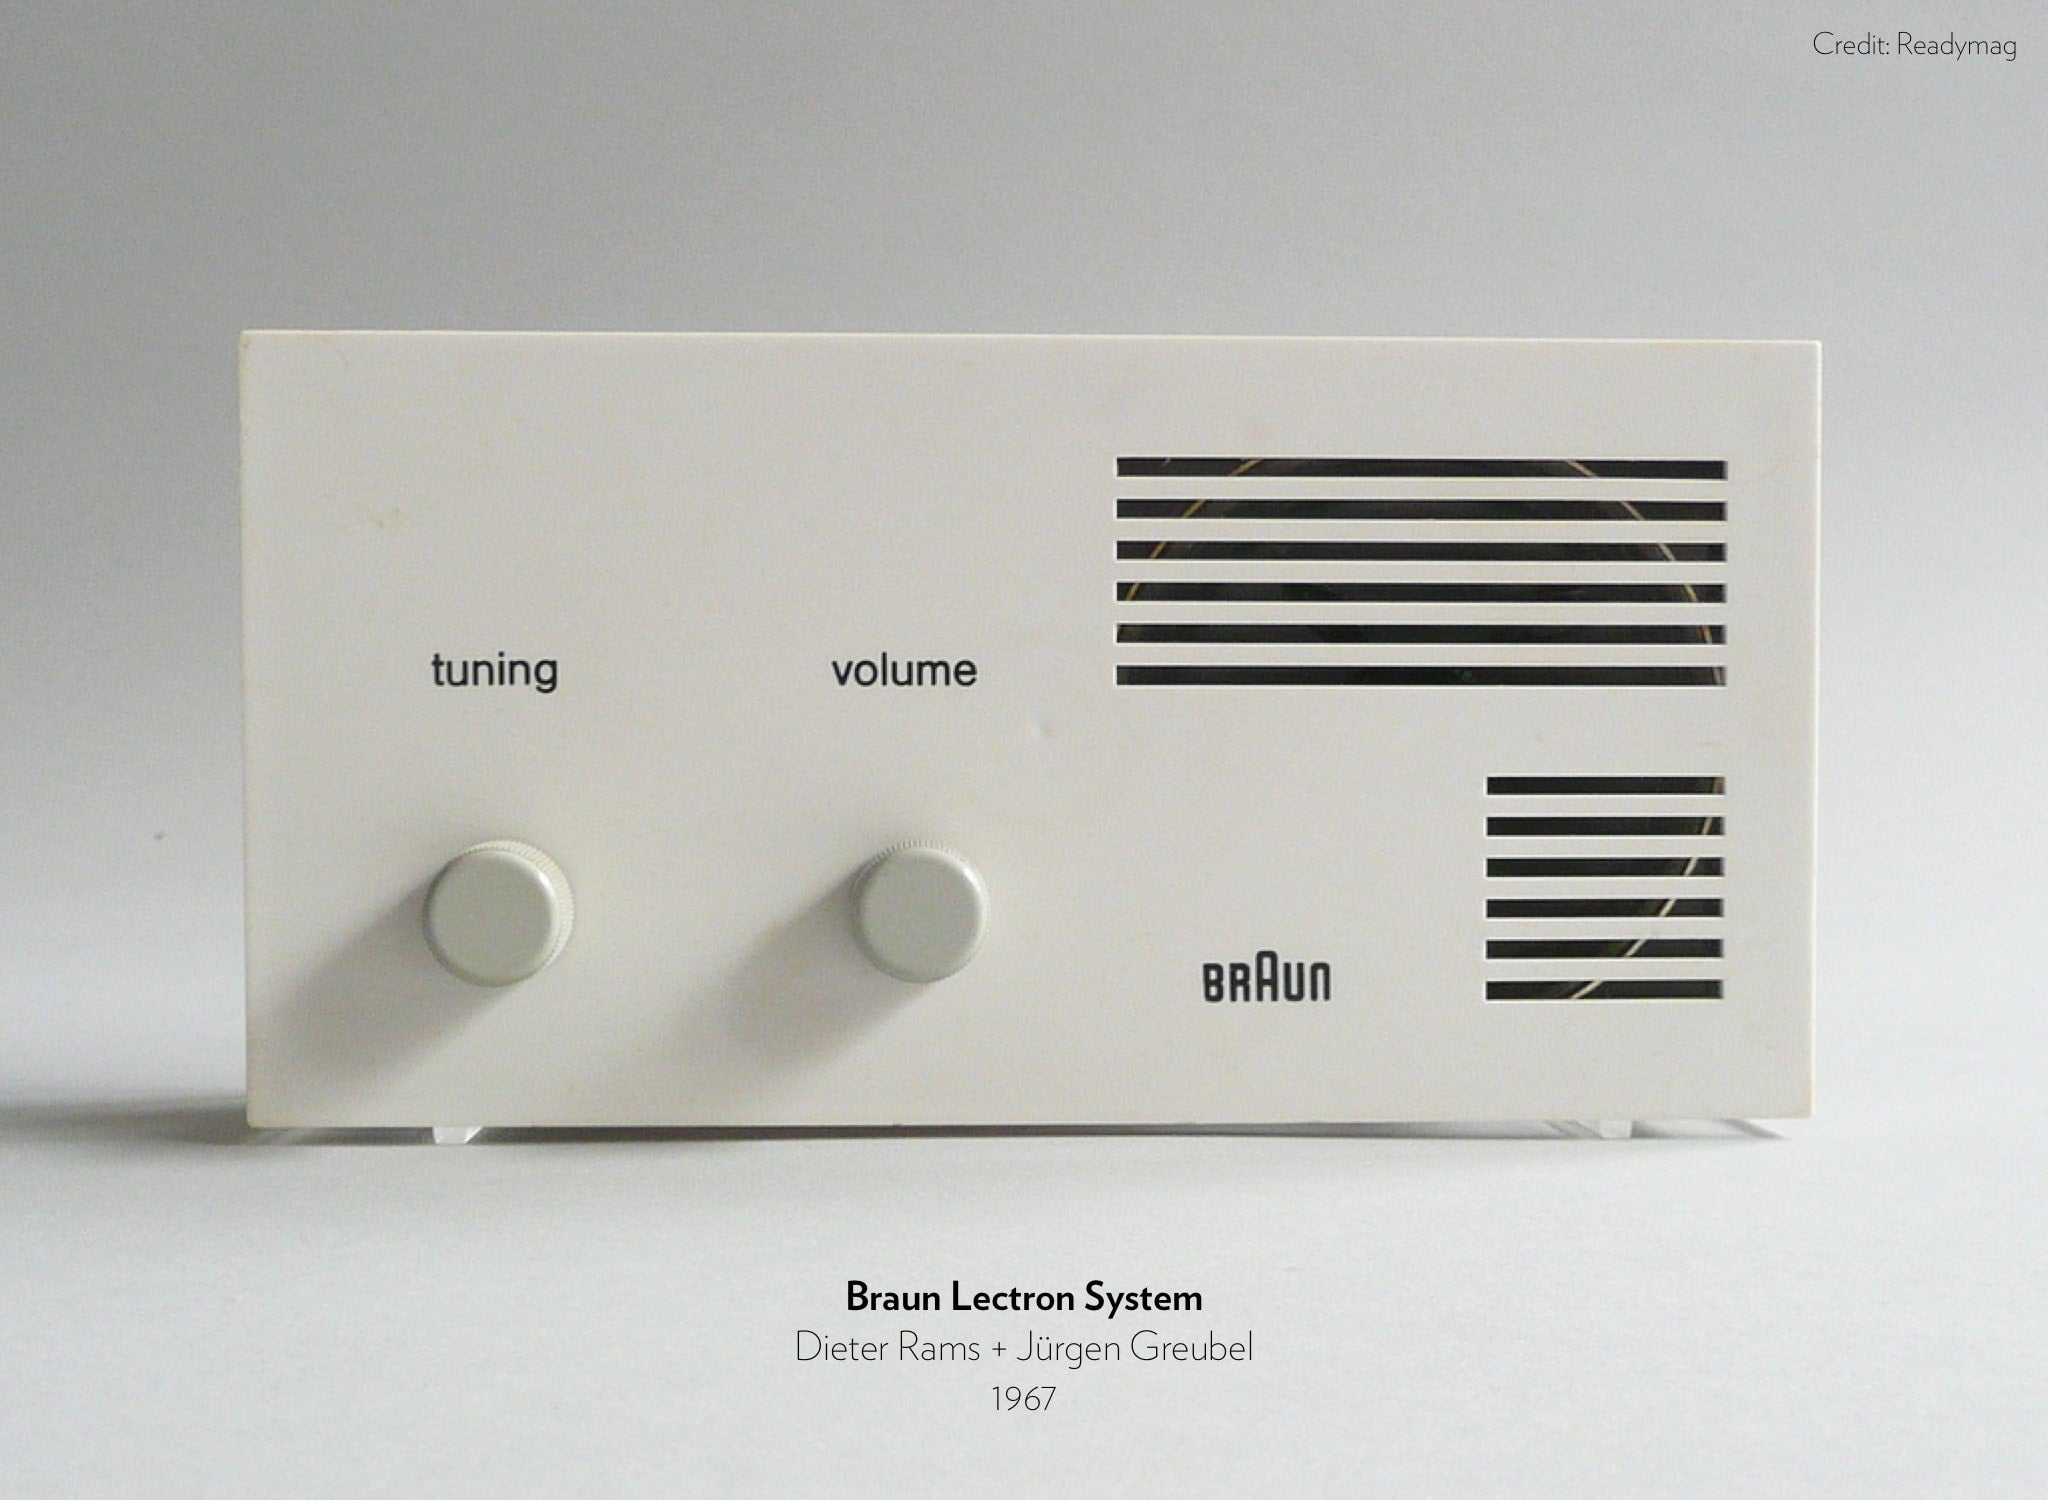 Braun Lectron System designed by Dieter Rams and Jürgen Greubel in 1967.